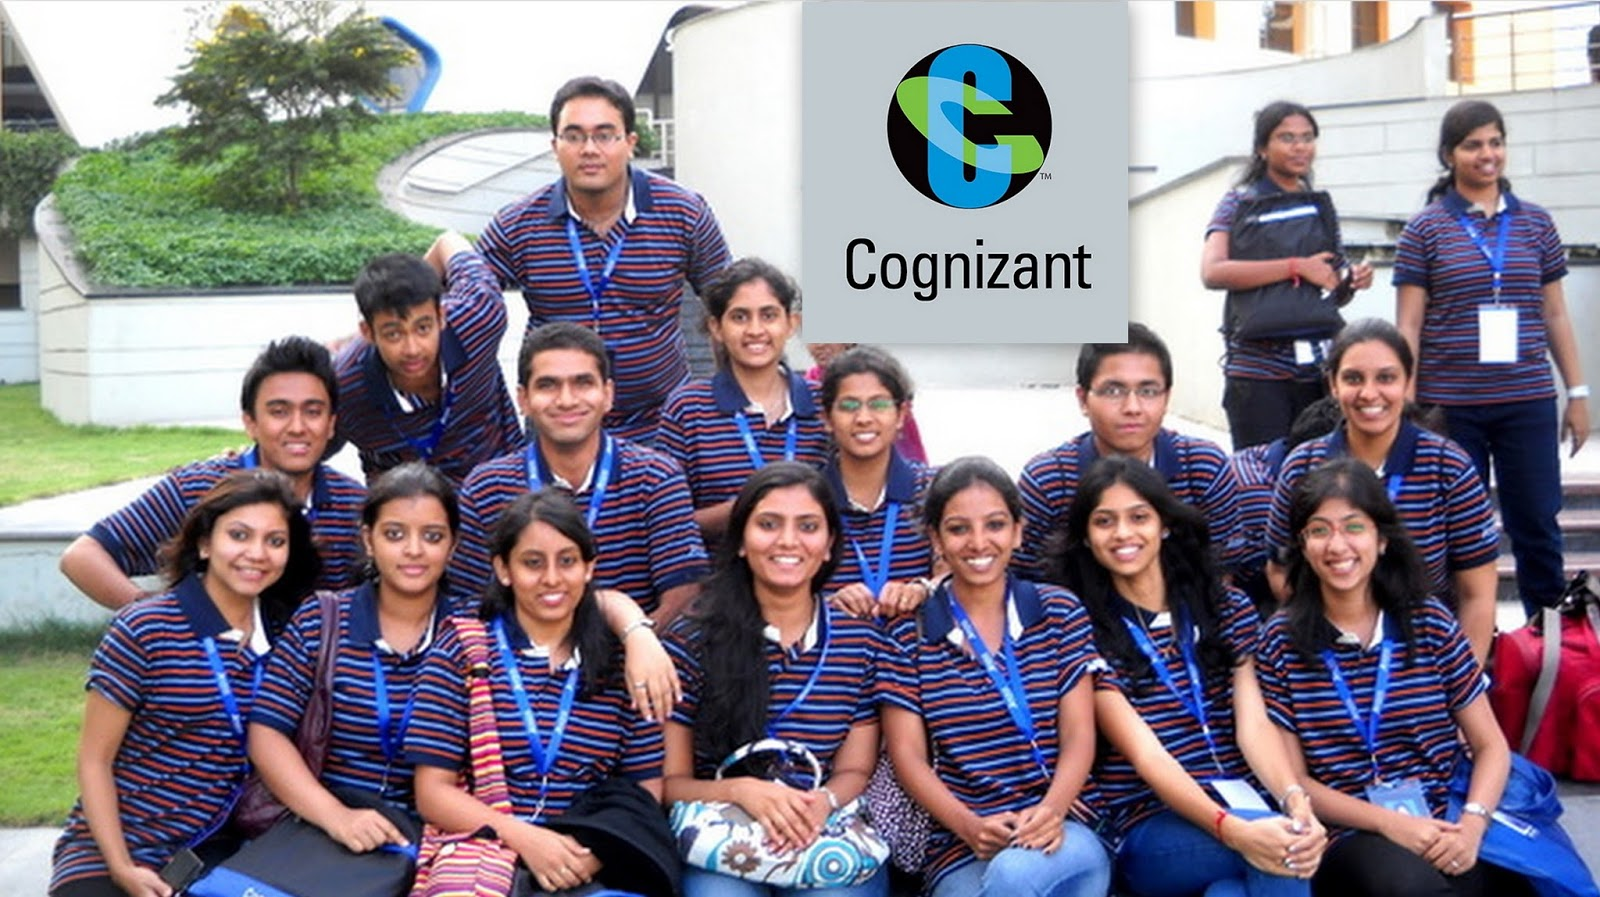 Cognizant immediate joining for freshers 2012 2013 2014 2015 2016 batch 9 locations multiple vacancies apply now